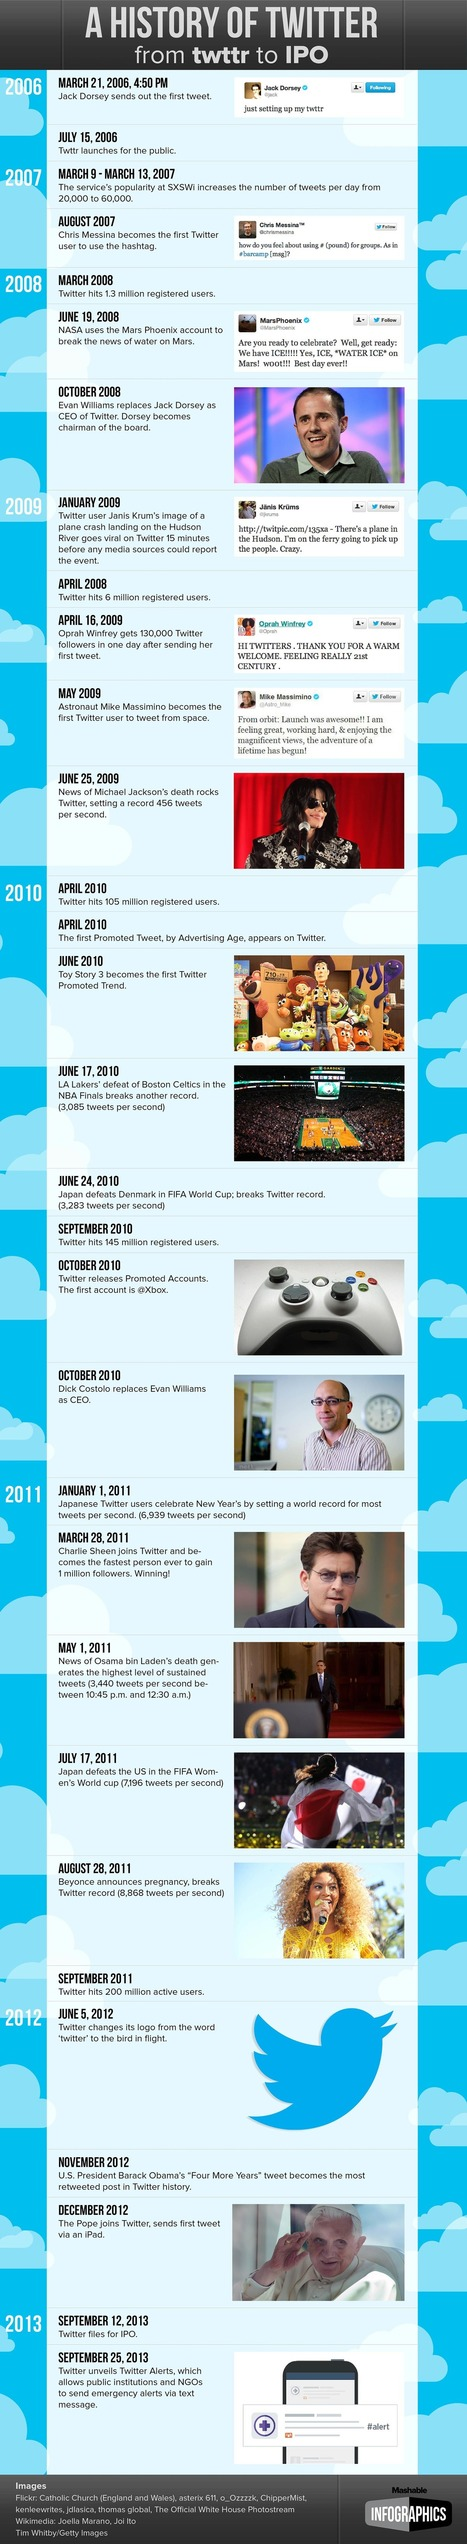 The History of Twitter [INFOGRAPHIC] | Social Media Useful Info | Scoop.it